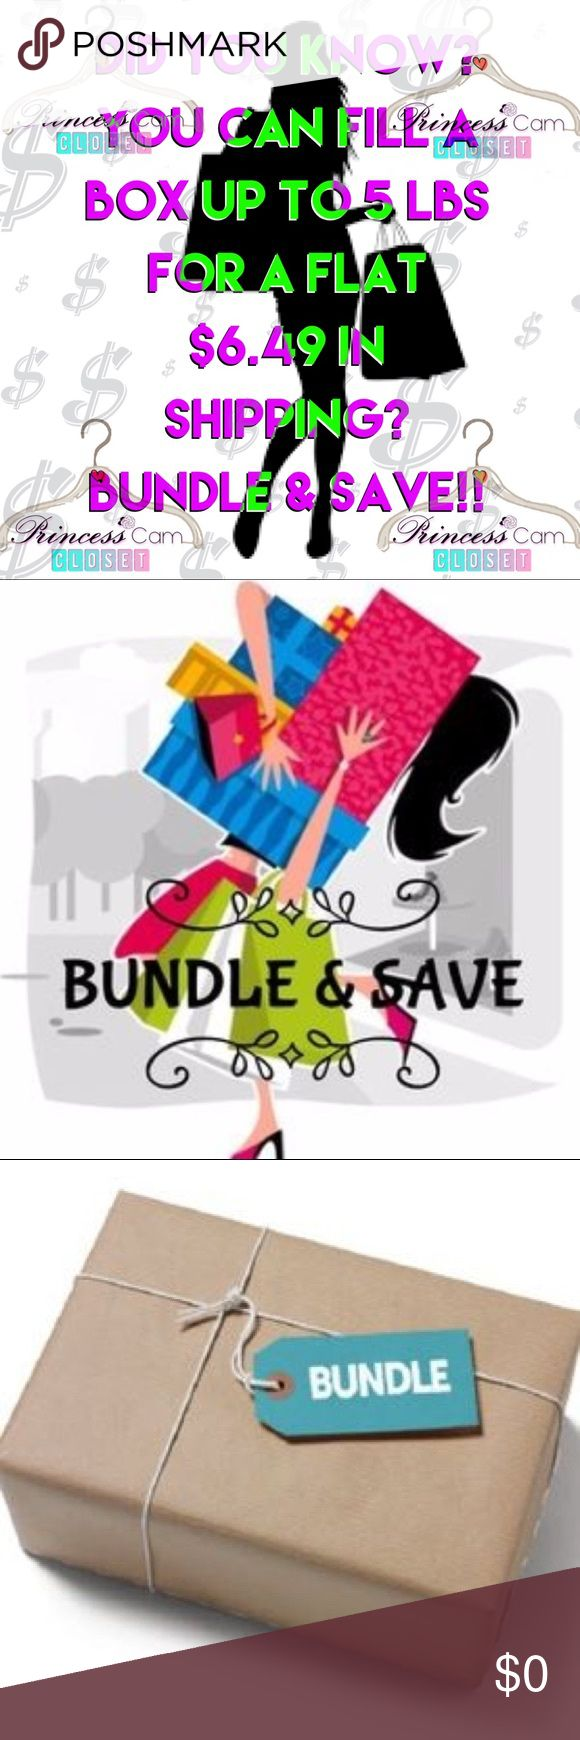 🚨CYBER MONDAY = 20 % OFF BUNDLE$ OF 3+ ‼️🚨📦📪📦 📦CYBER MONDAY $AVING$!! BUNDLE UP 3+ ITEMS & SAVE 20%!!📦  FOR TODAY ONLY !!   Why pay $6.49 shipping just for ONE item ??  BUNDLE your 'LIKES' by clicking 'Add To Bundle' on each item.  Once you bundle 3 items or more, you'll receive 20% OFF AUTOMATICALLY !! Feel free to send reasonable offers as well !!  😍  Every item in my closet has been handled with TLC. Shop with confidence. If you have any additional questions feel free to tag me…